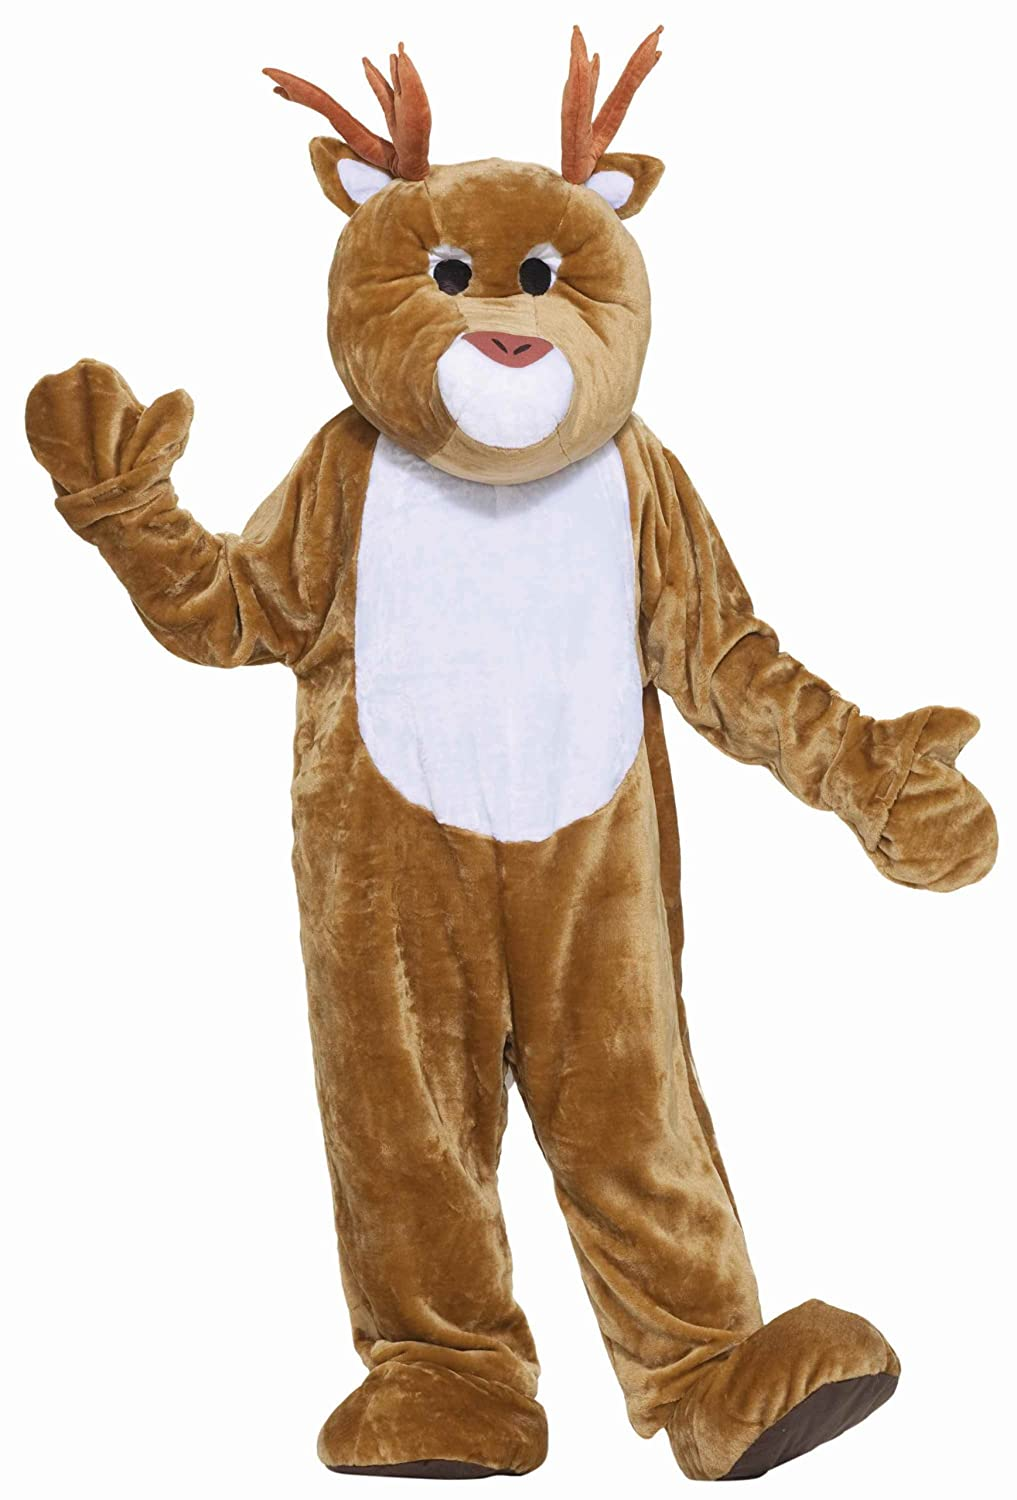 Amazon.com Forum Deluxe Plush Reindeer Mascot Costume Brown One Size Clothing  sc 1 st  Amazon.com & Amazon.com: Forum Deluxe Plush Reindeer Mascot Costume Brown One ...